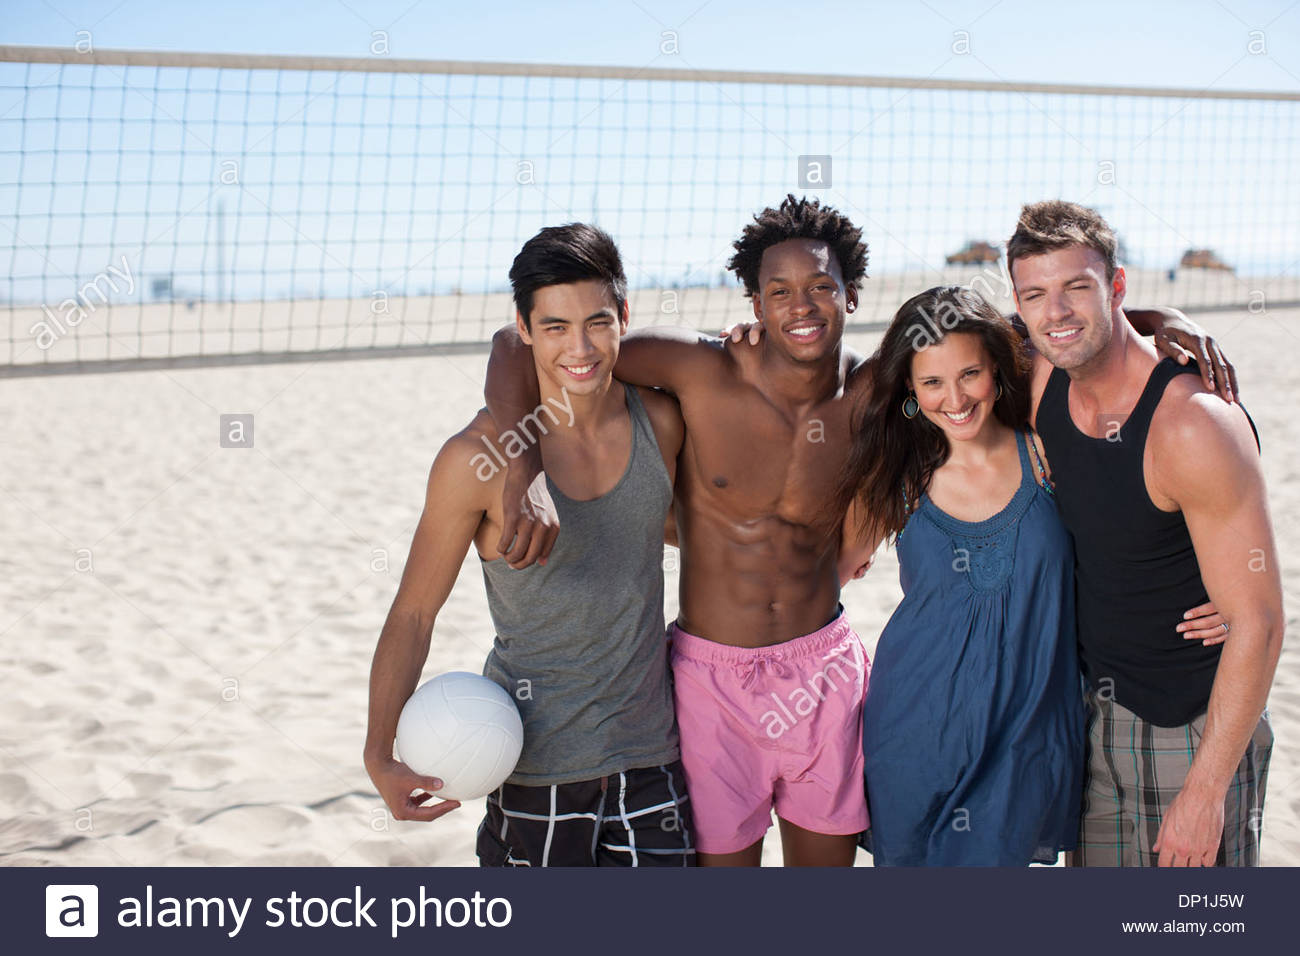 Quatre personnes debout sur le terrain de beach-volley Photo Stock